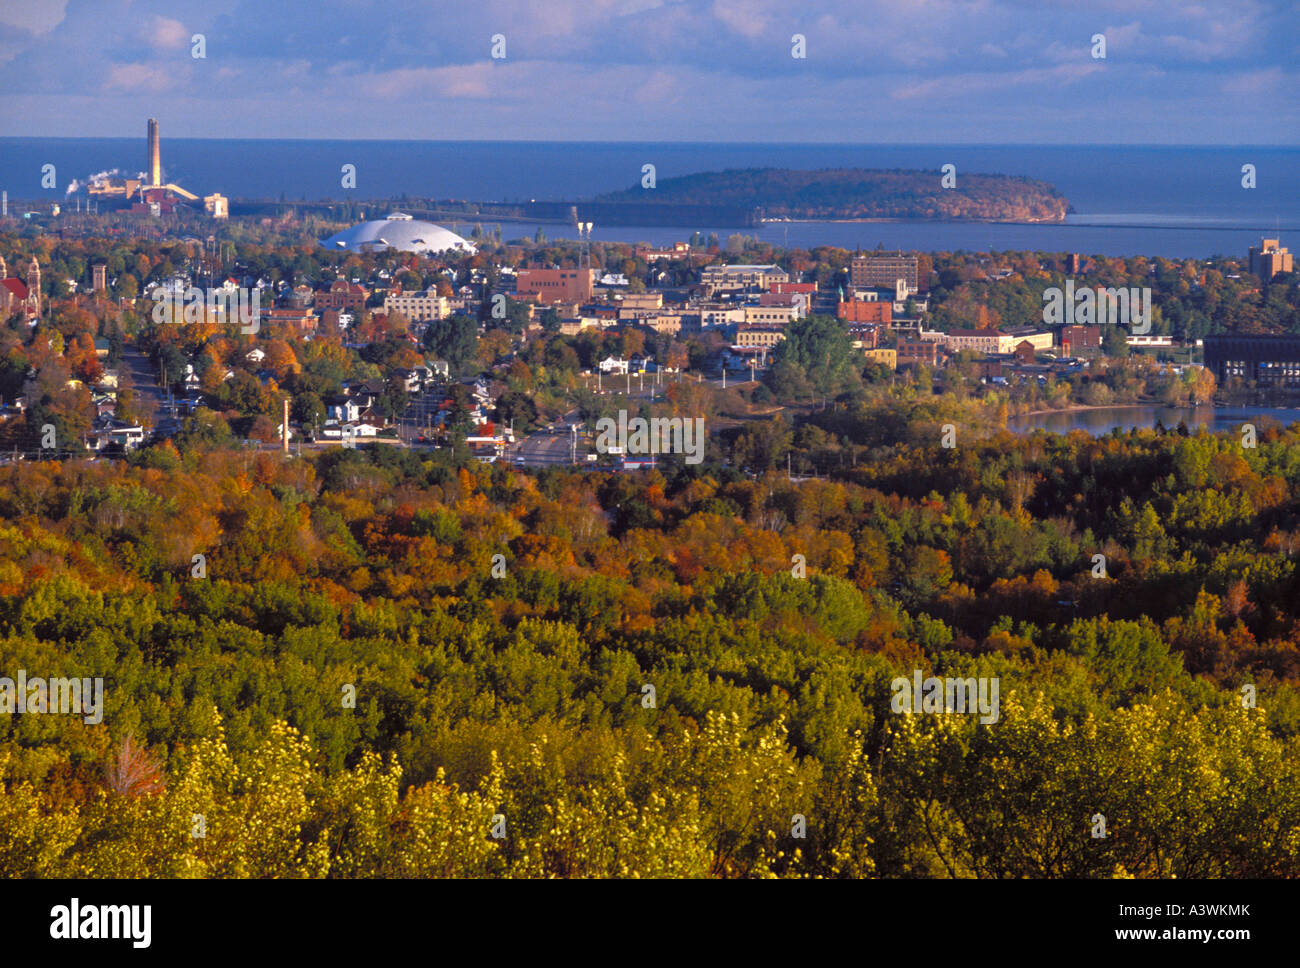 The city of Marquette Mich is seen from a lookout on Mount Marquette in fall - Stock Image